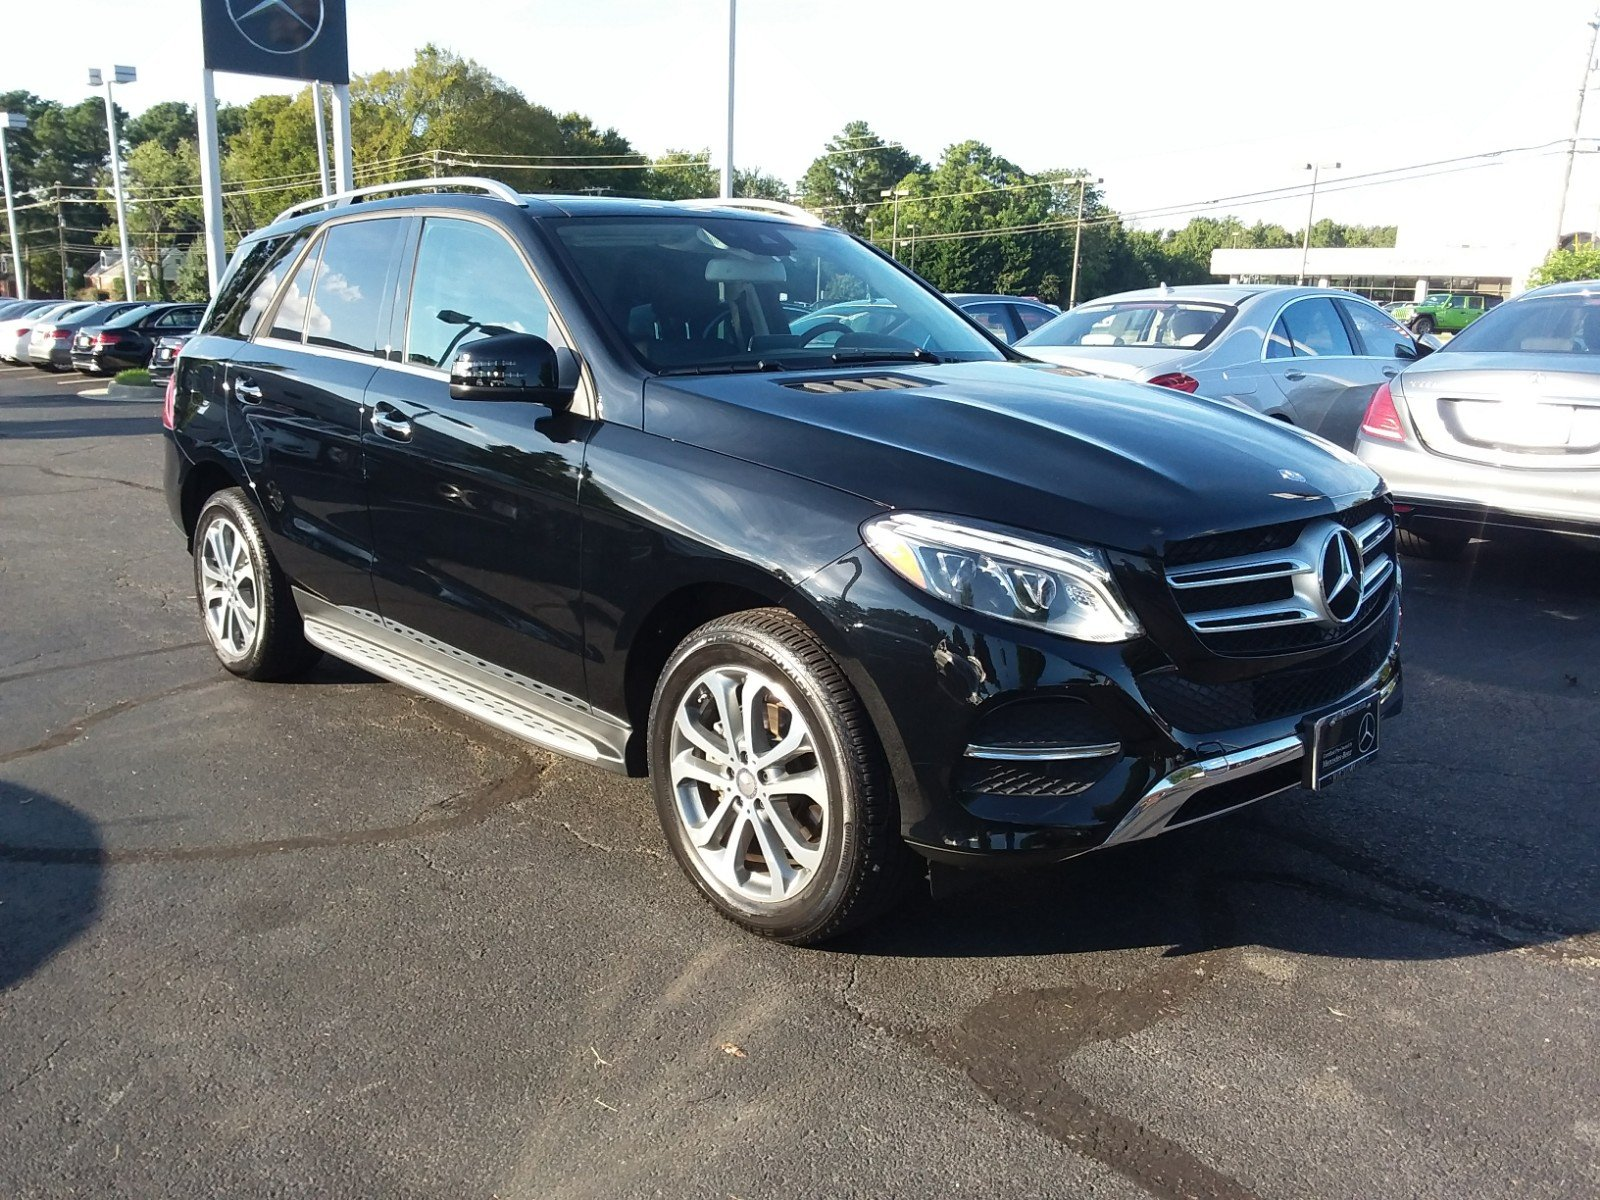 Certified Pre Owned 2016 Mercedes Benz GLE GLE 350 SUV in Richmond